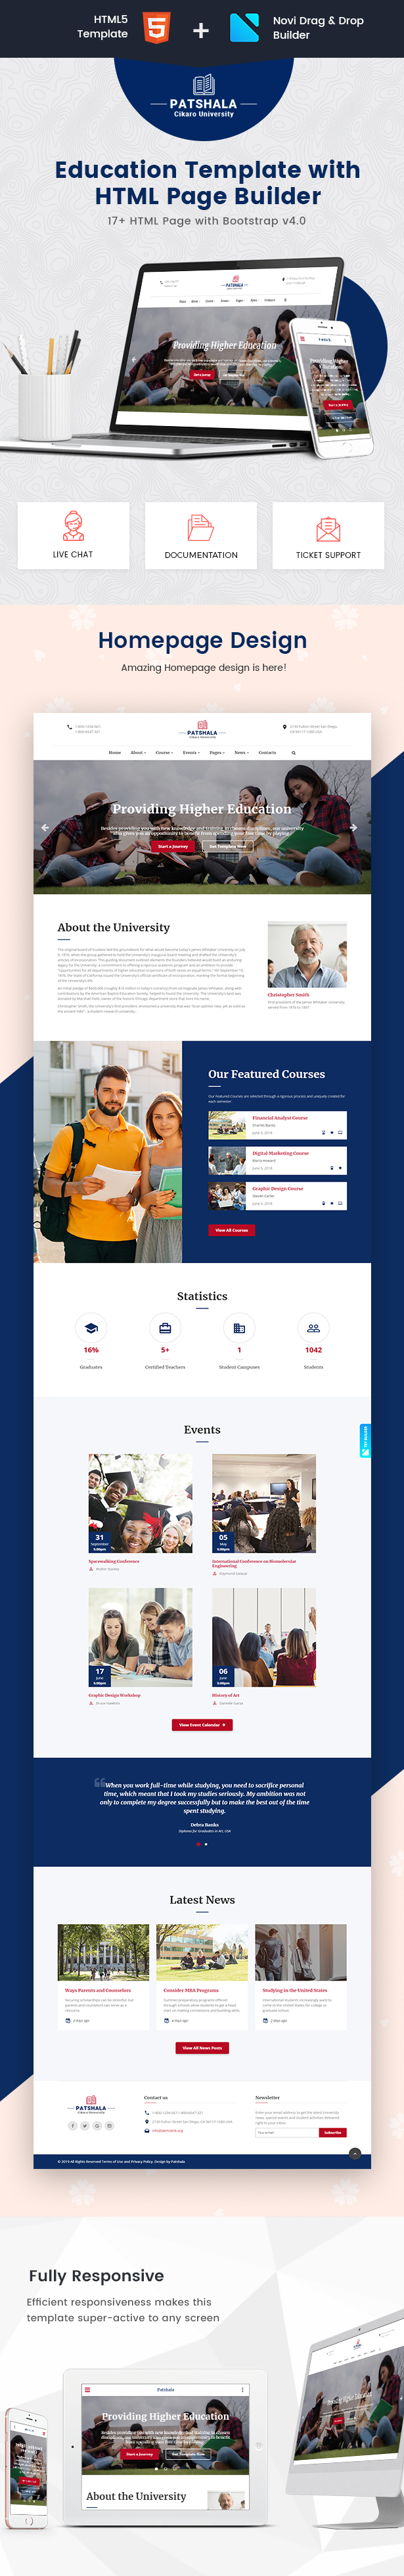 Patshala – Education HTML Template with Page Builder - 1